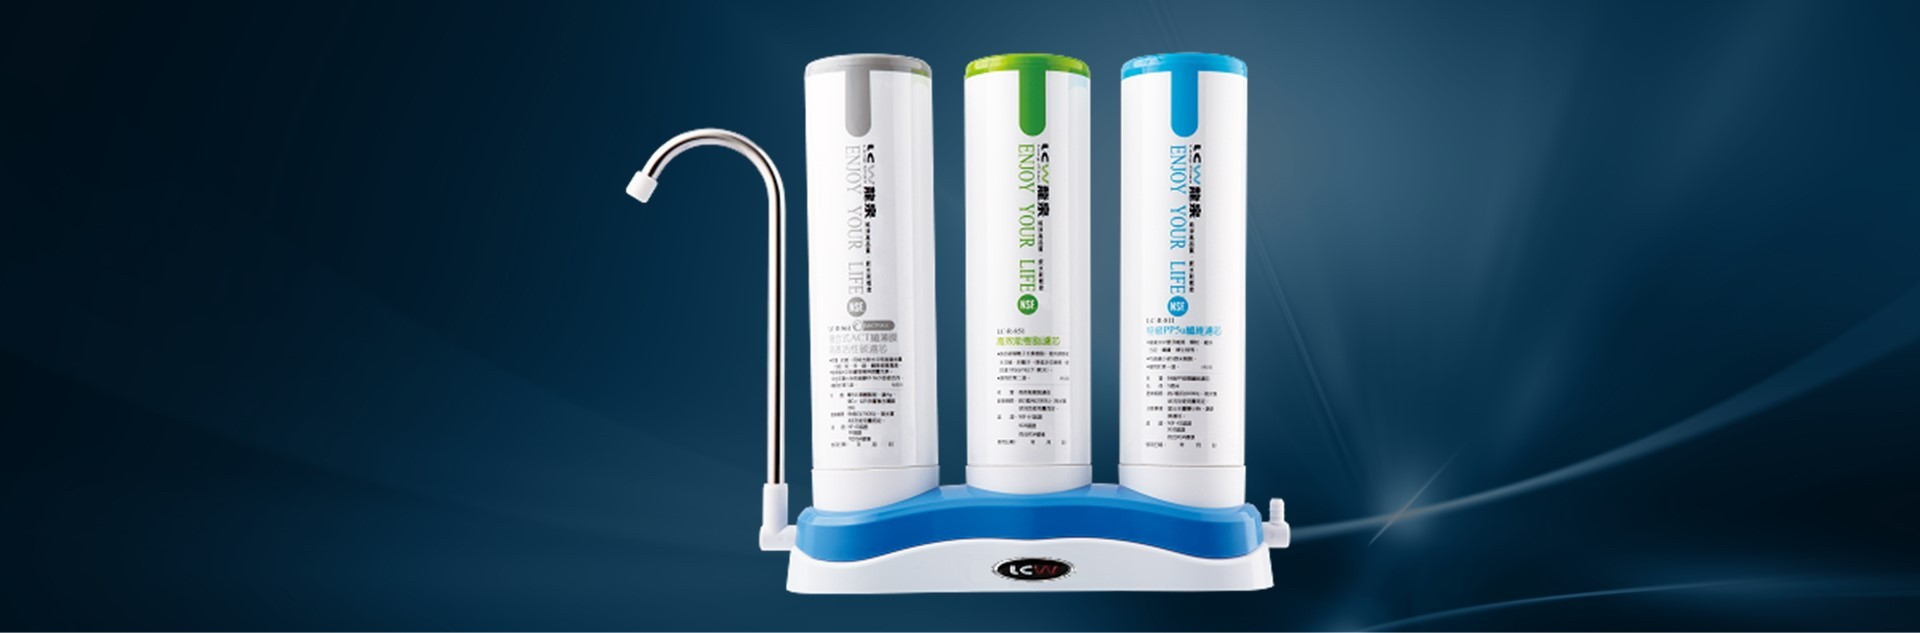 LC-R-919Water Purifier